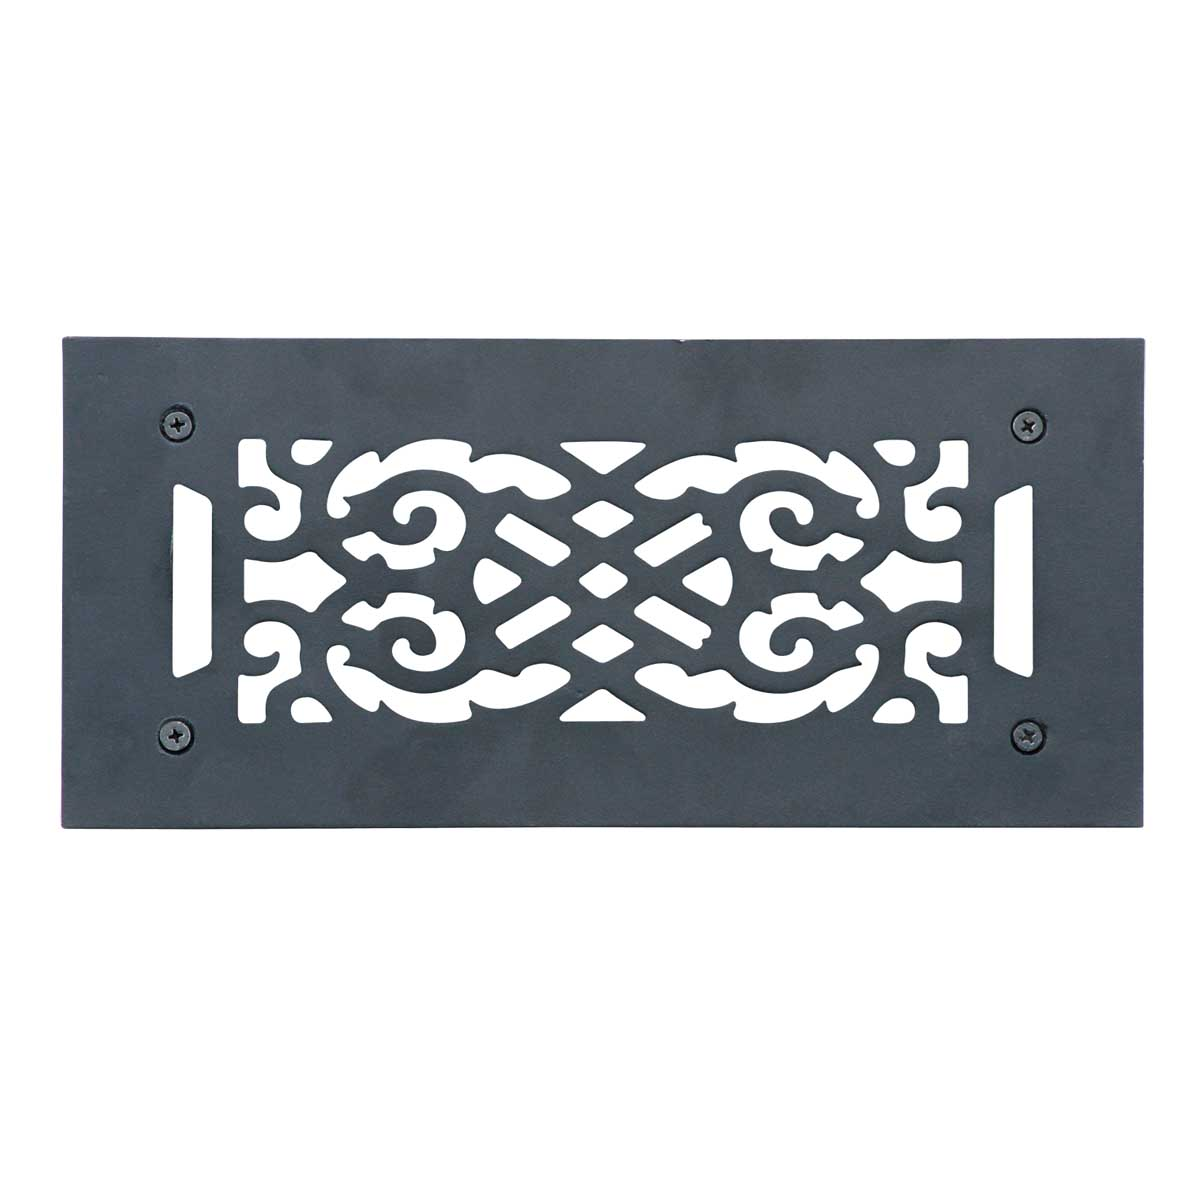 Heat Air Grille Cast Victorian Overall 5 1/2 x 12 | Renovator's Supply